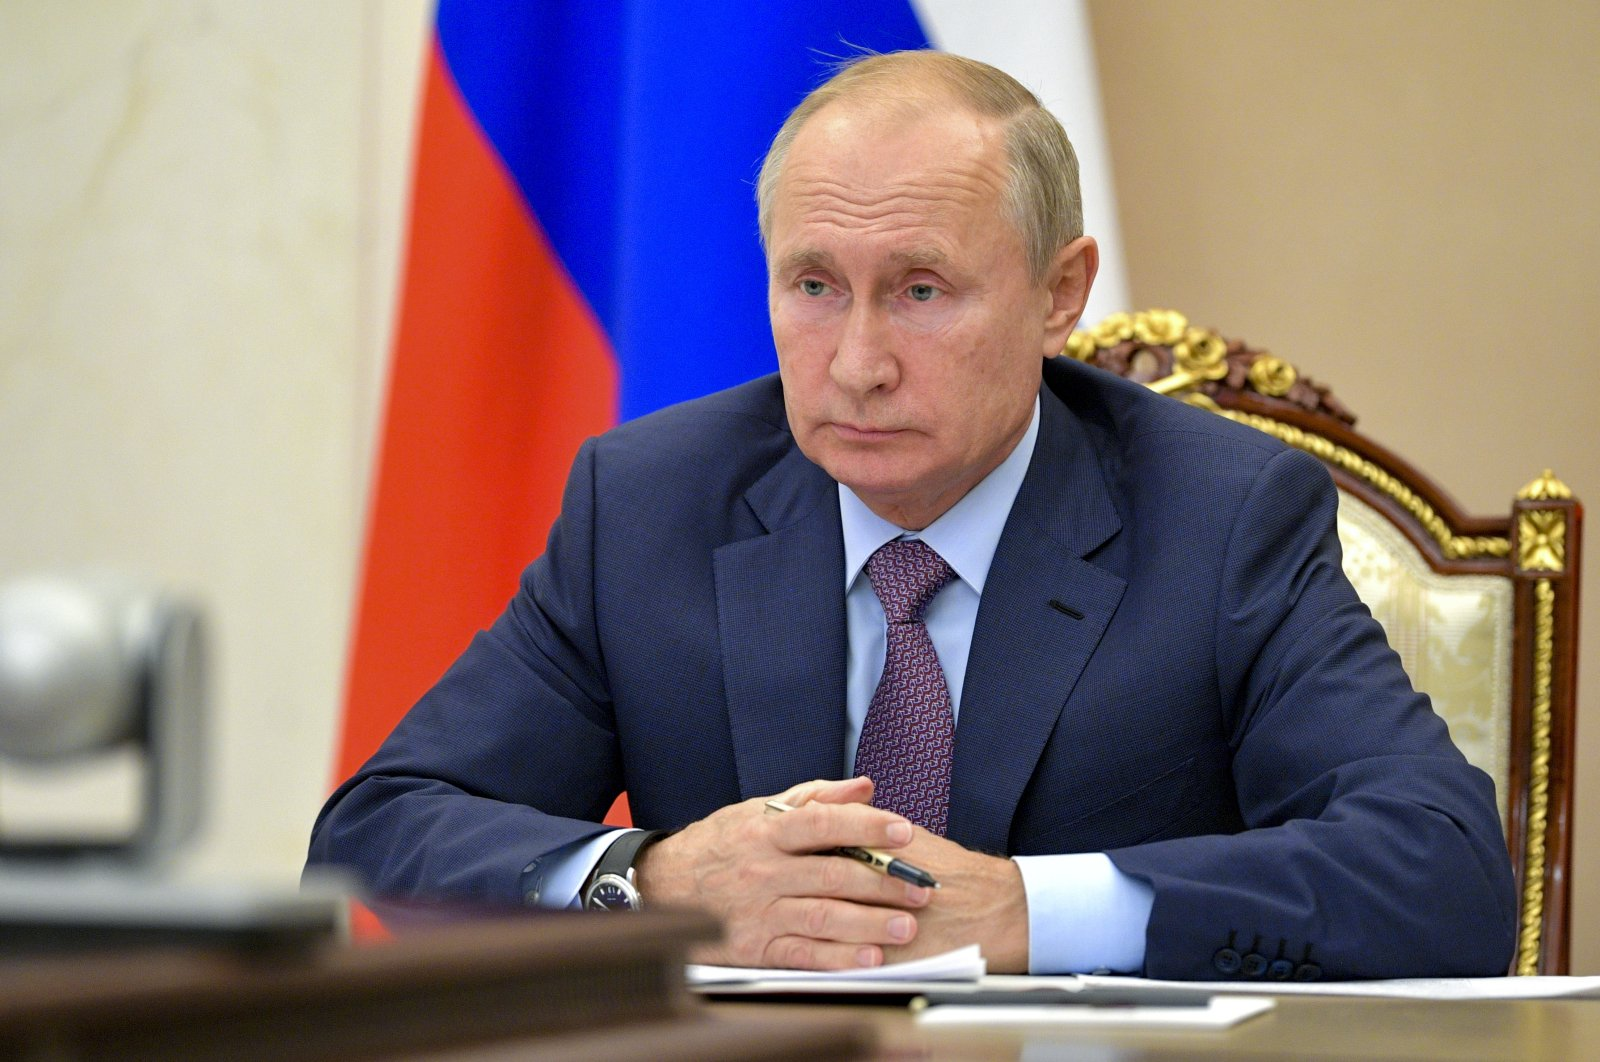 Russian President Vladimir Putin attends a meeting via videoconference at the Novo-Ogaryovo residence outside Moscow, Russia, Oct. 14, 2020. (AP Photo)